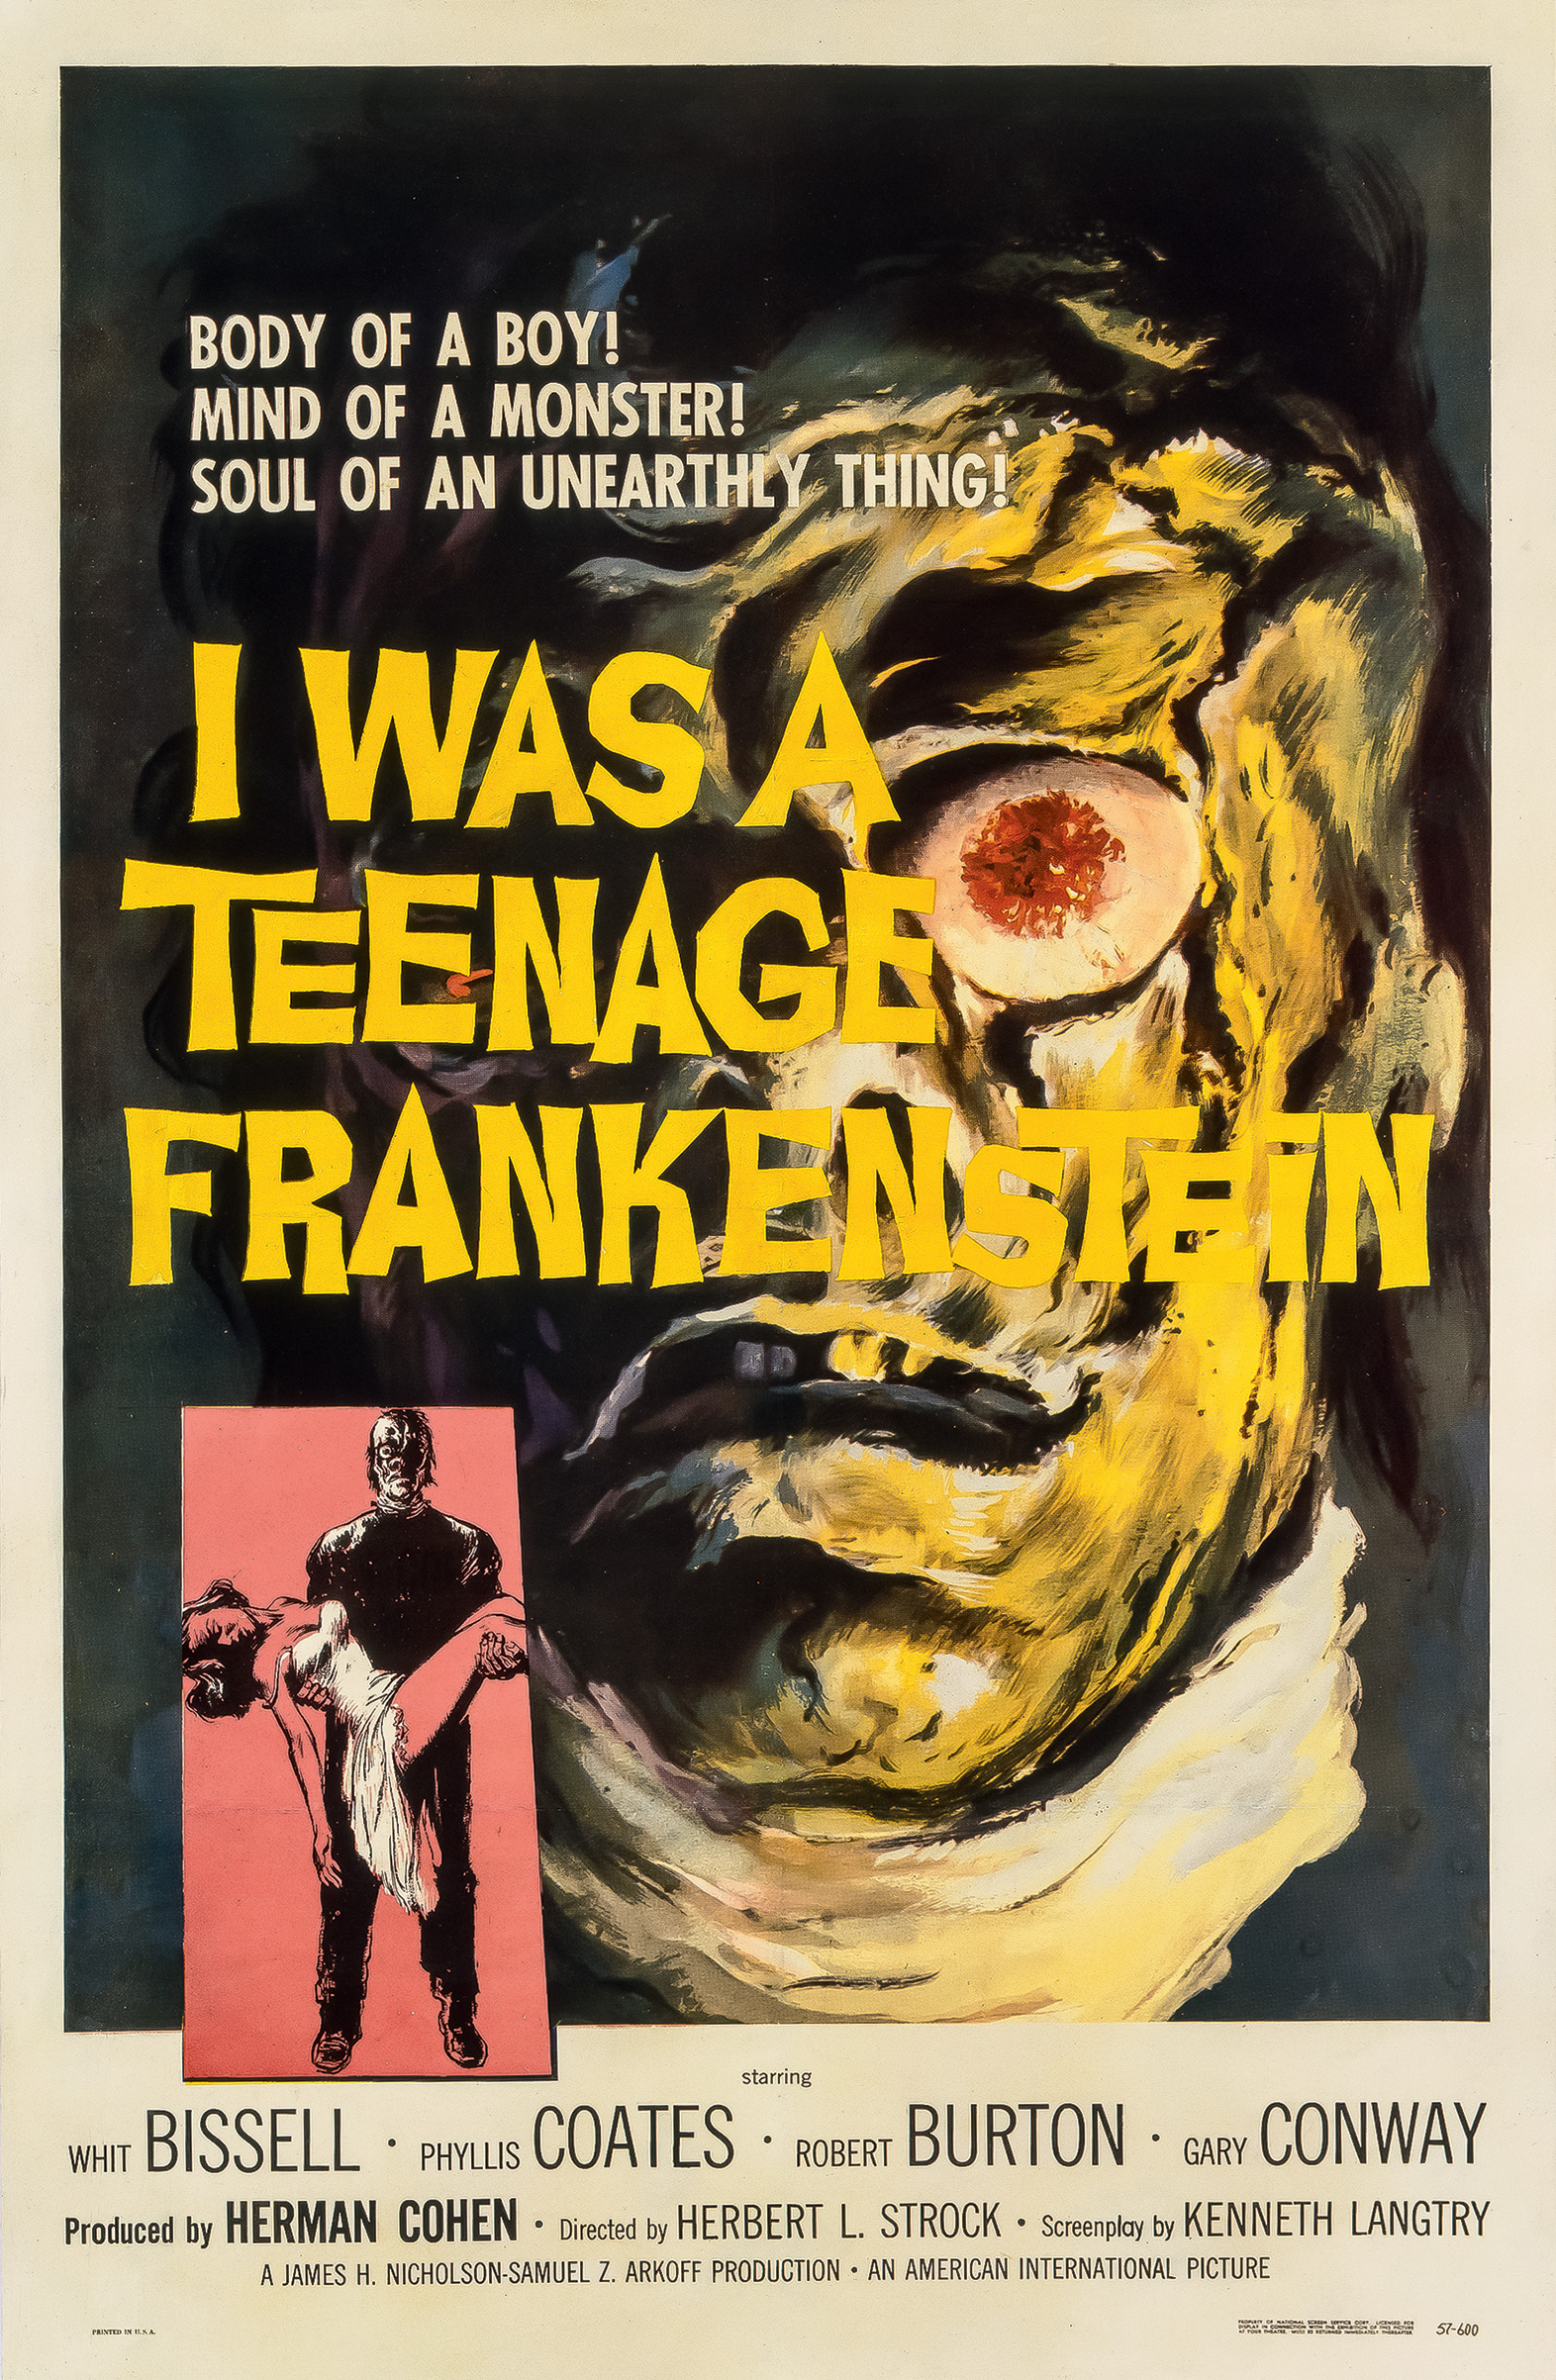 Original American poster for I Was a Teenage Frankenstein (1957), illustrated by Reynold Brown